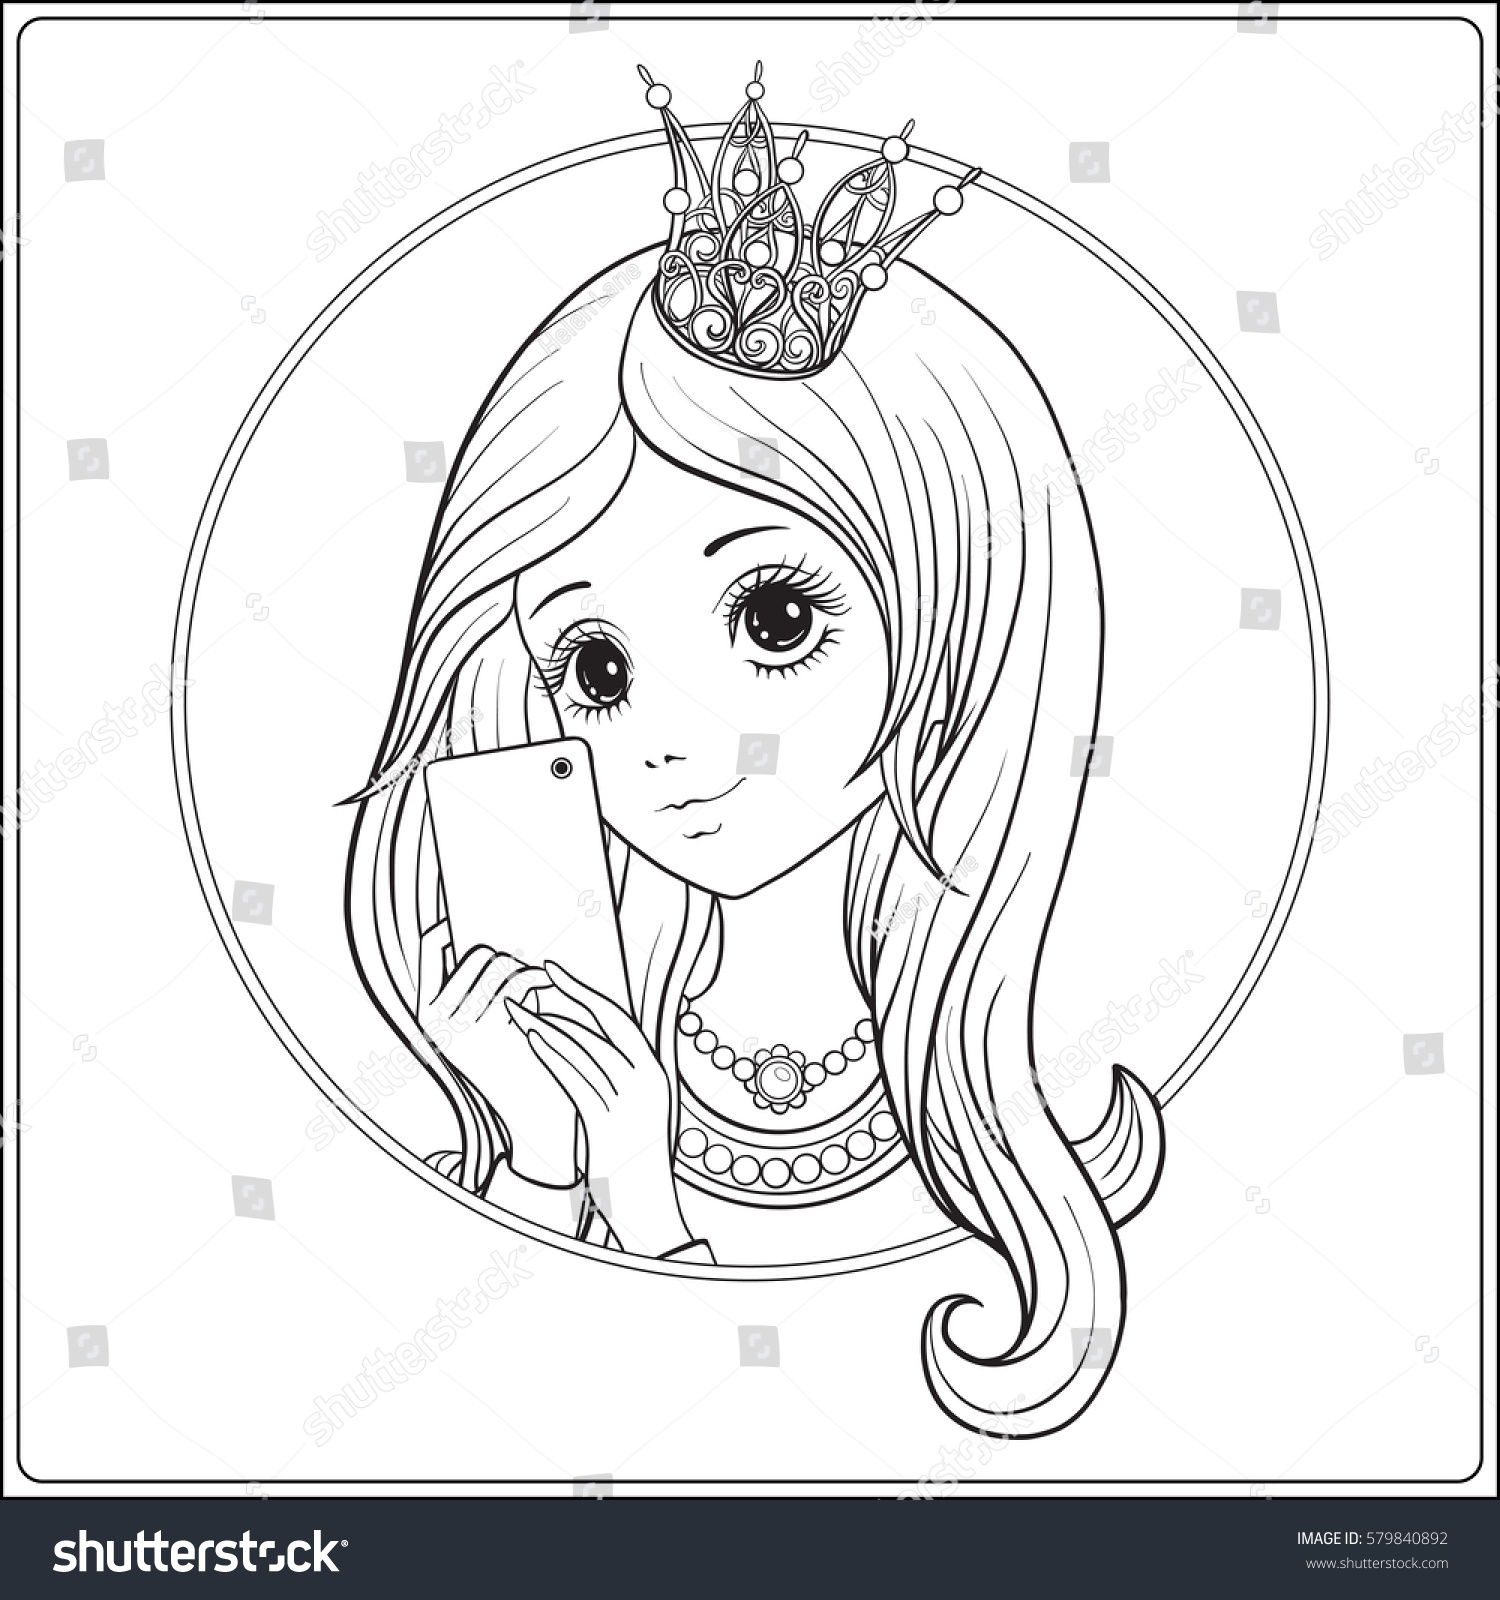 Coloring book princess crowns - Young Nice Girl With Long Hear And Princess Crown On Her Head Make Selfie Or Photograph